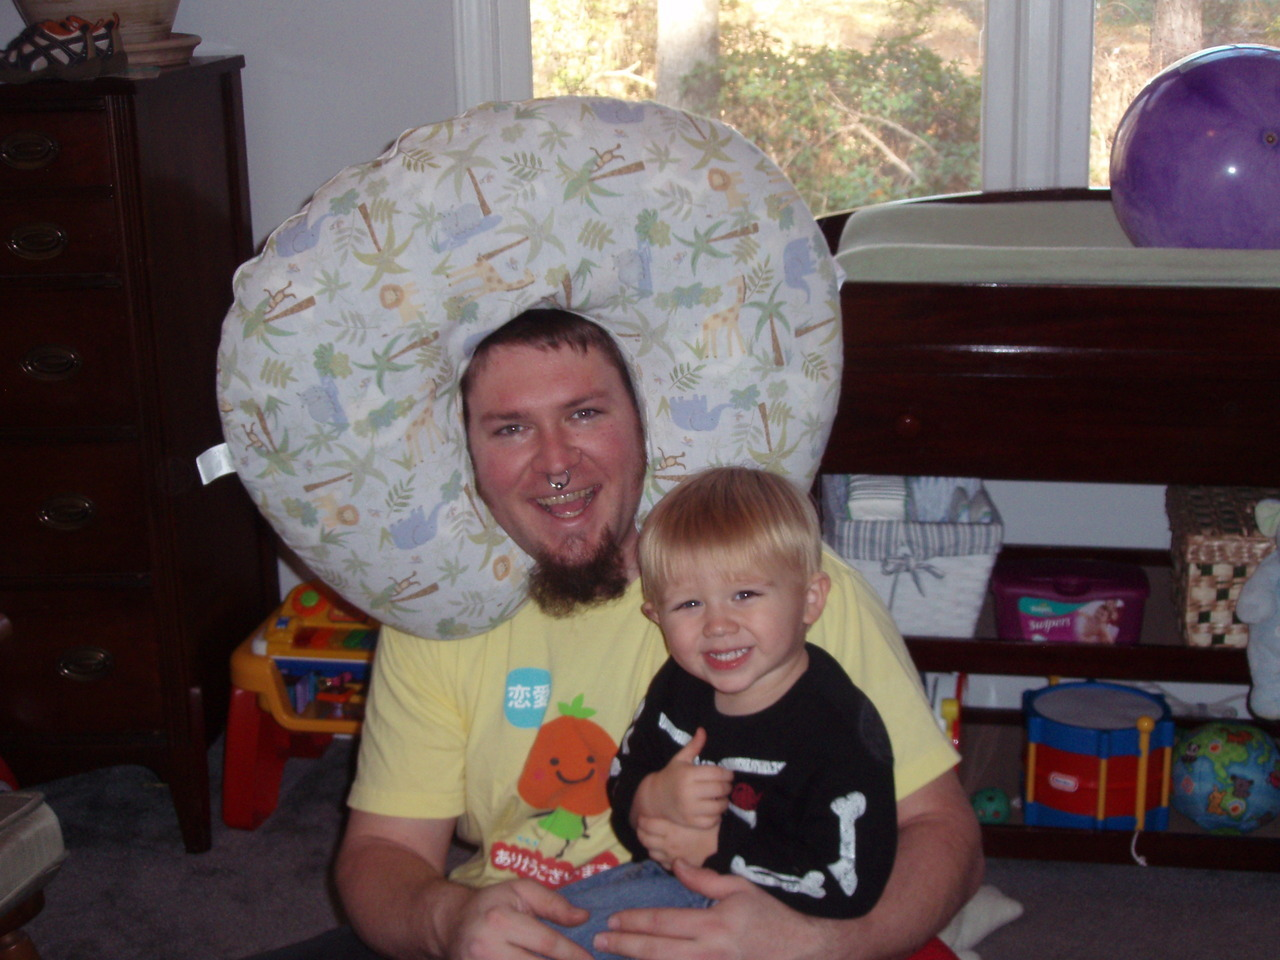 andyshead:  Weird Pillow on Head + Charlie on Lap = Thumbs Up!  Hi-larious.